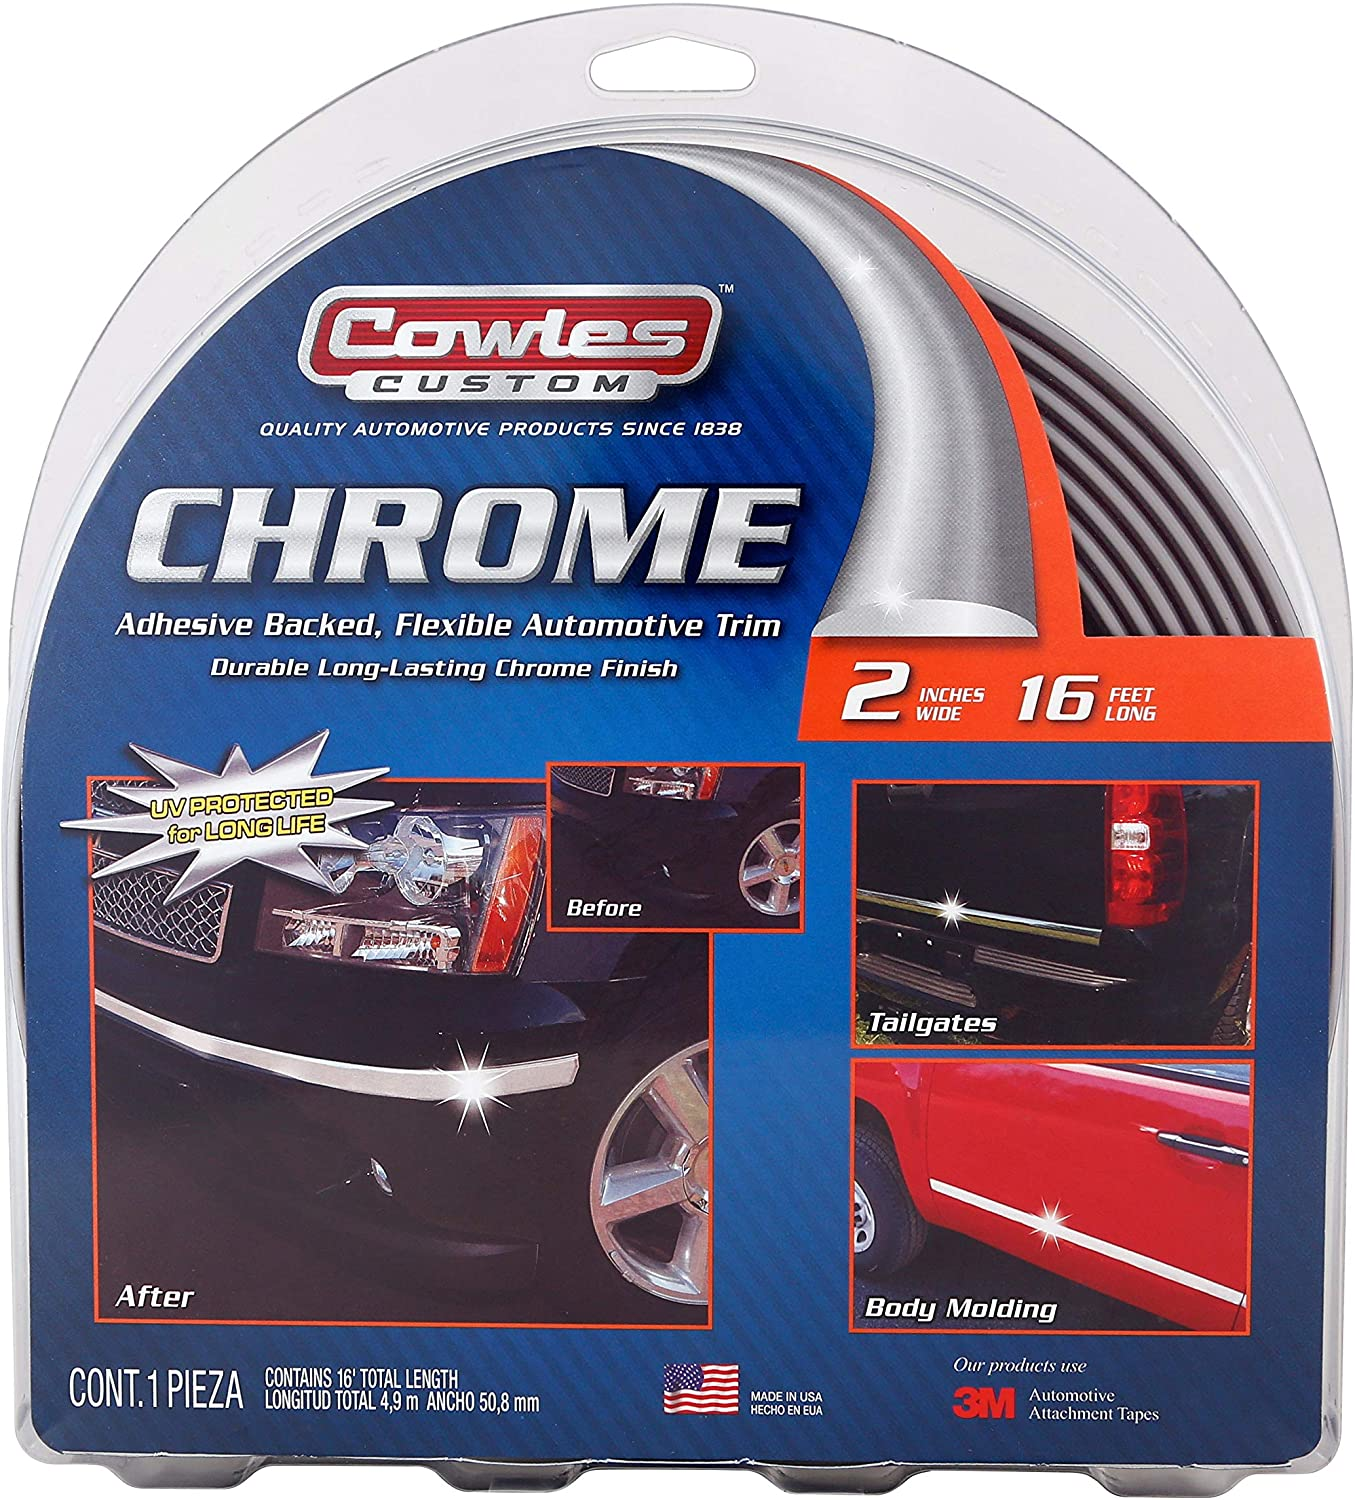 Cowles Body Molding - 2in x 16ft Chrome Molding For Trucks (S38900): Automotive